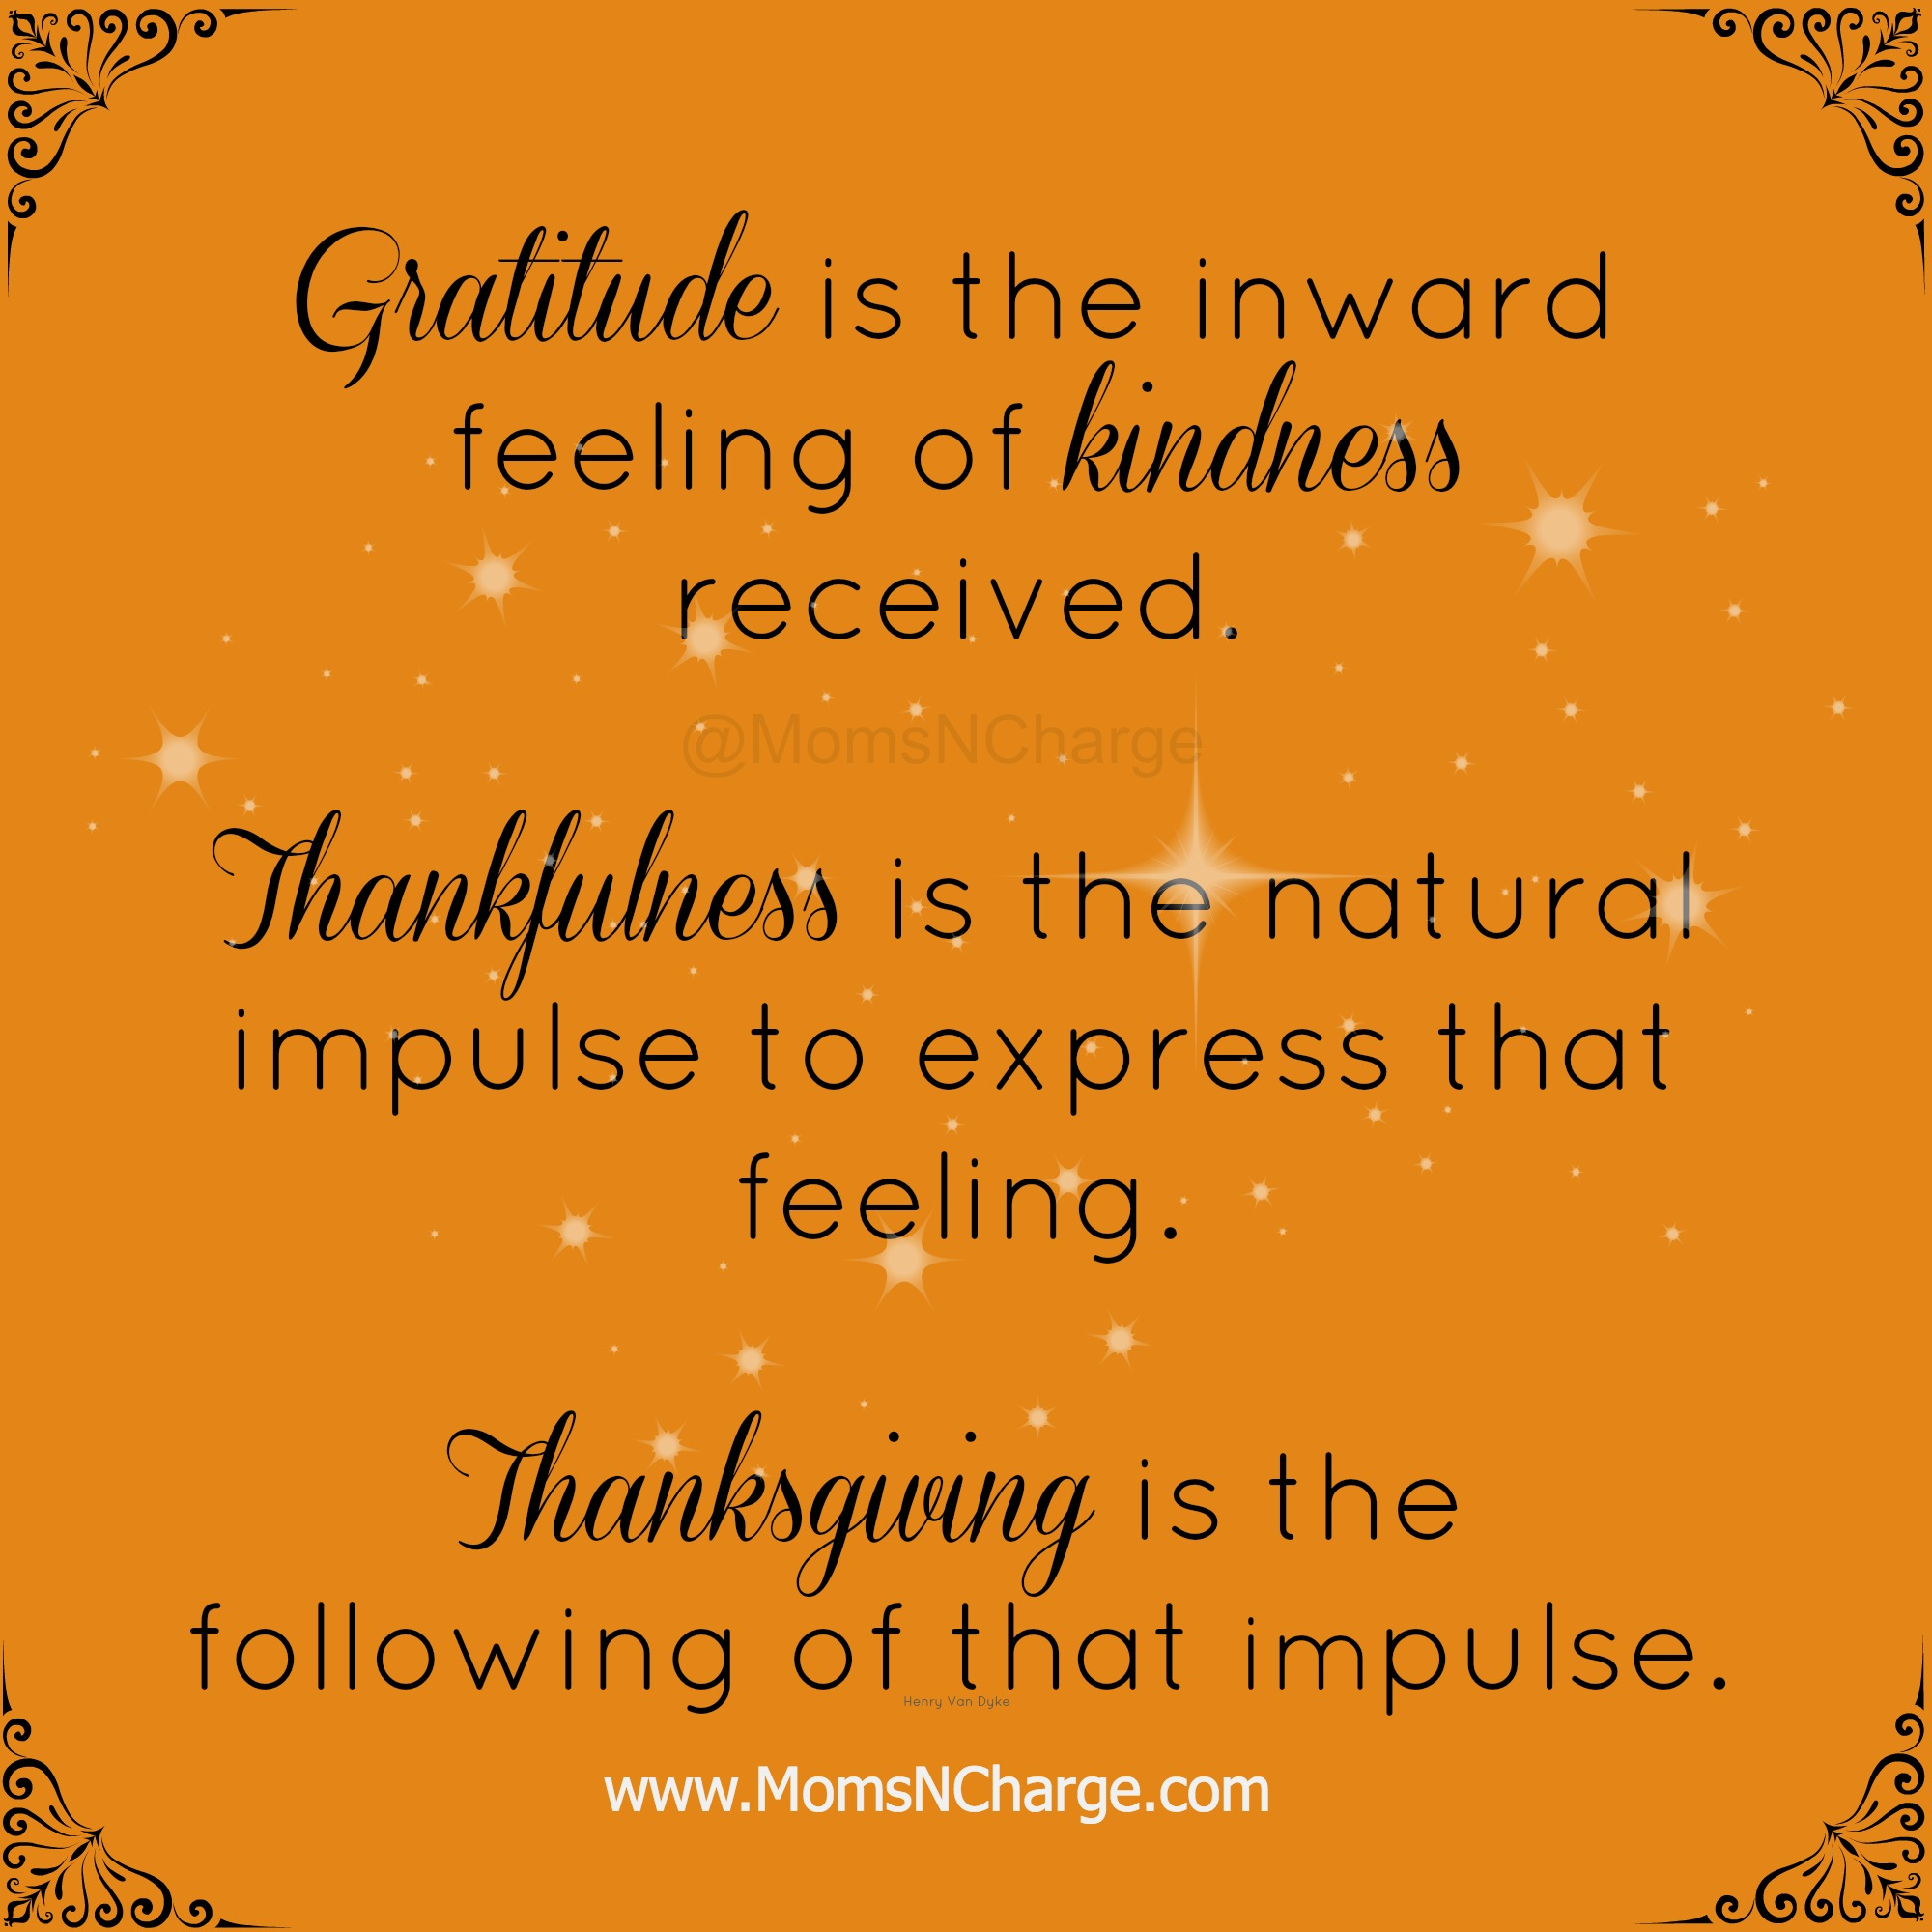 Gratitude - Thanksgiving